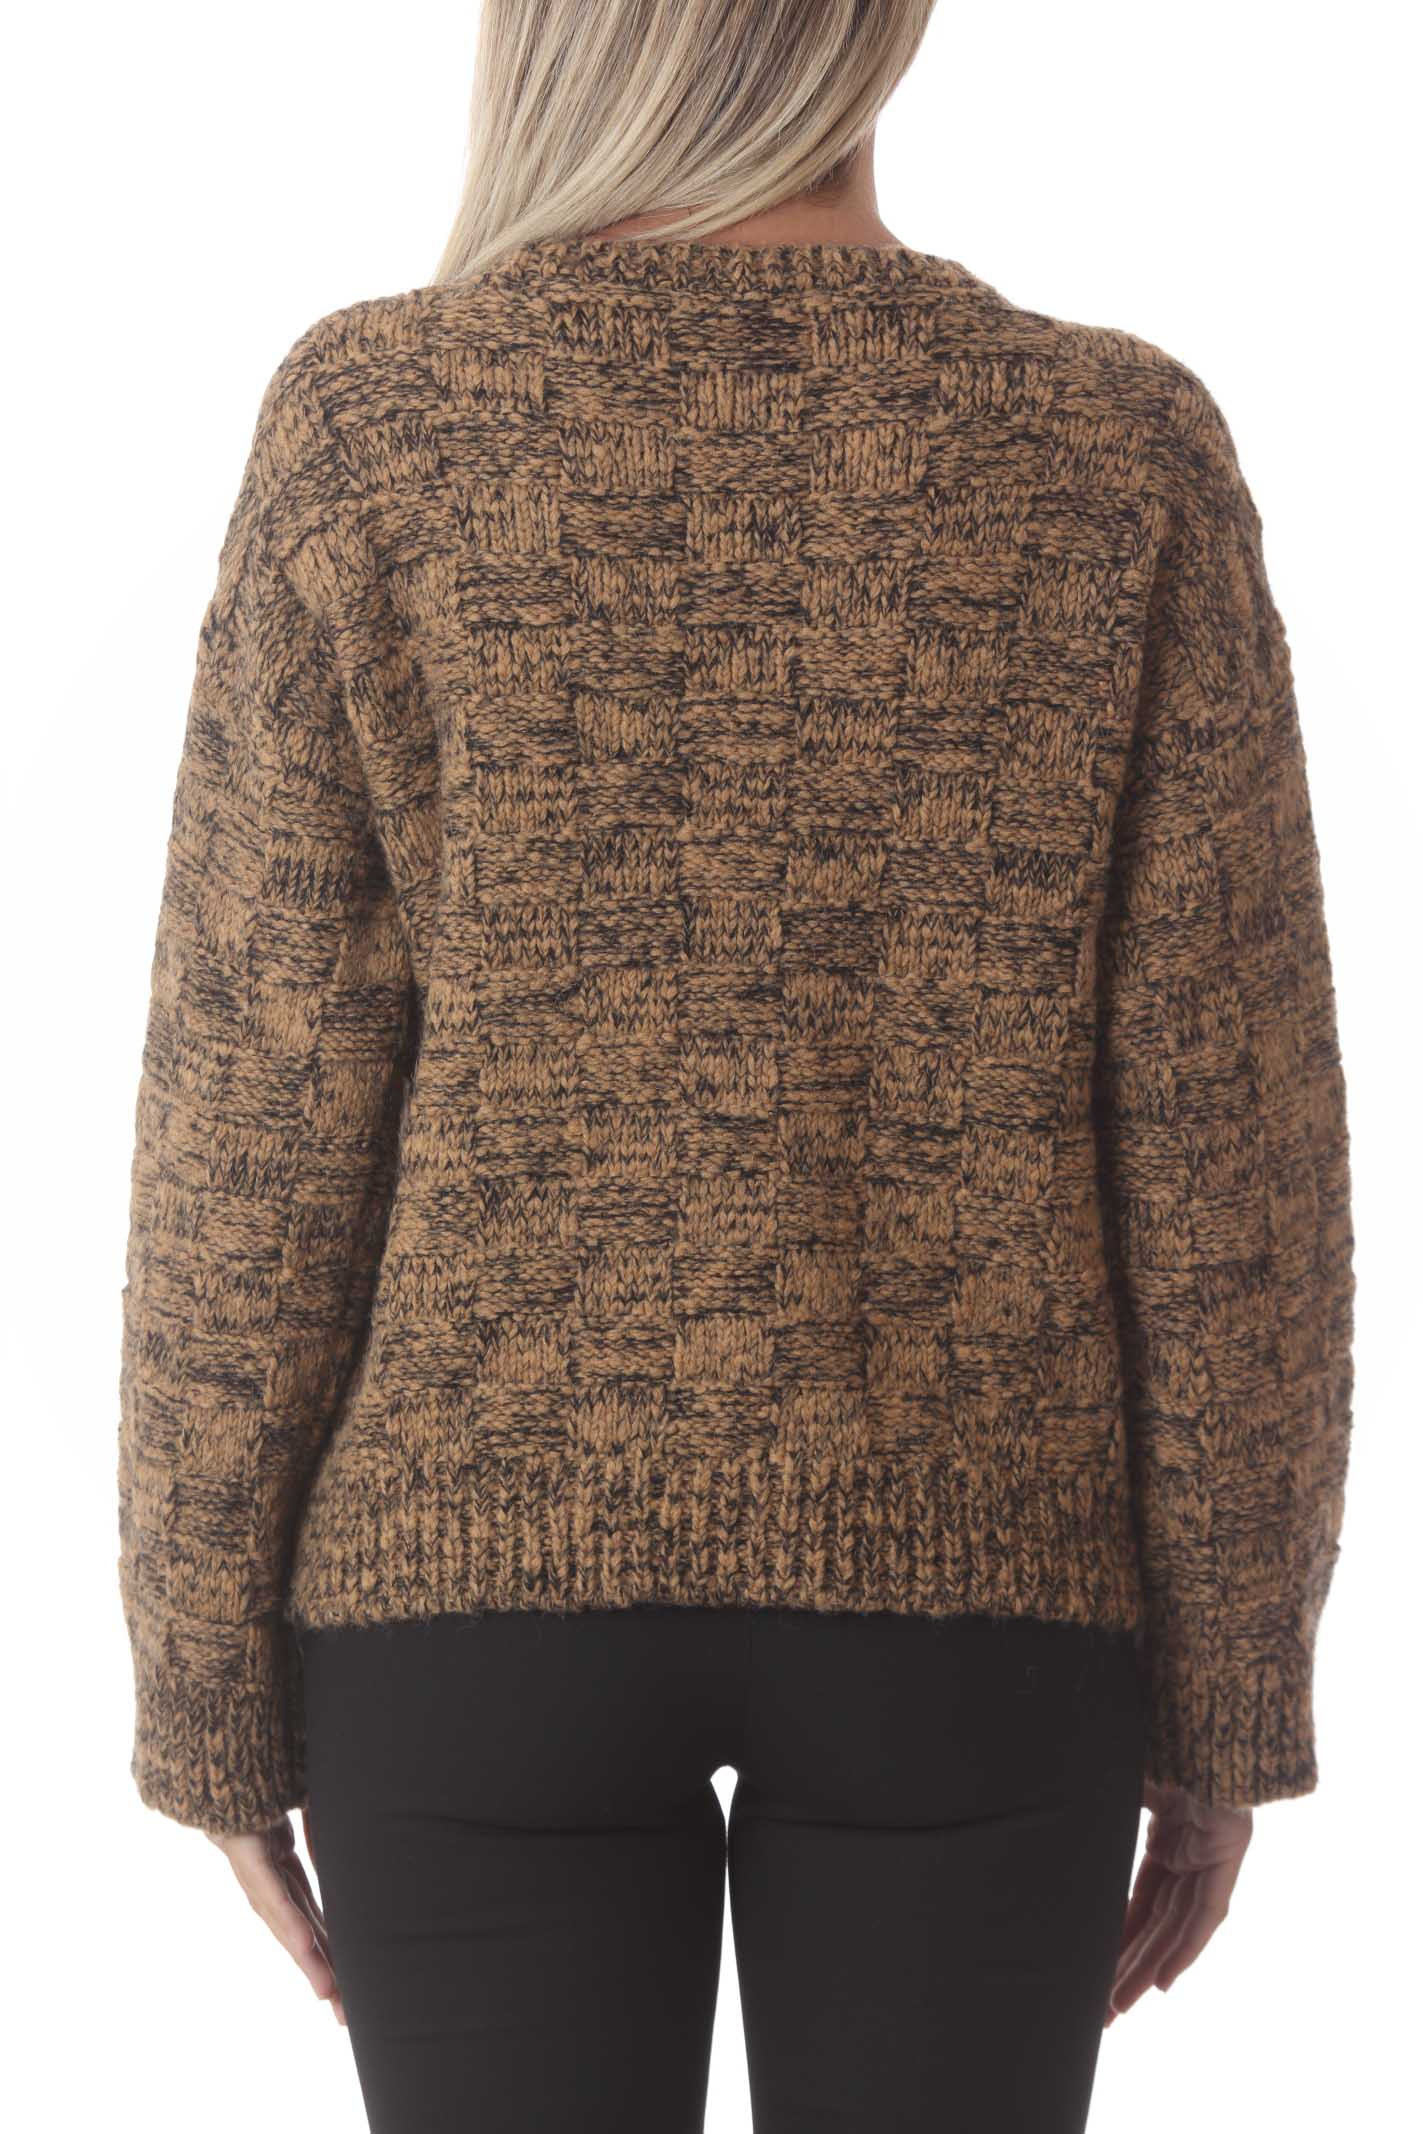 Larch knitwear ATTIC AND BARN   Maglie   A21-ATKN015-AT336691